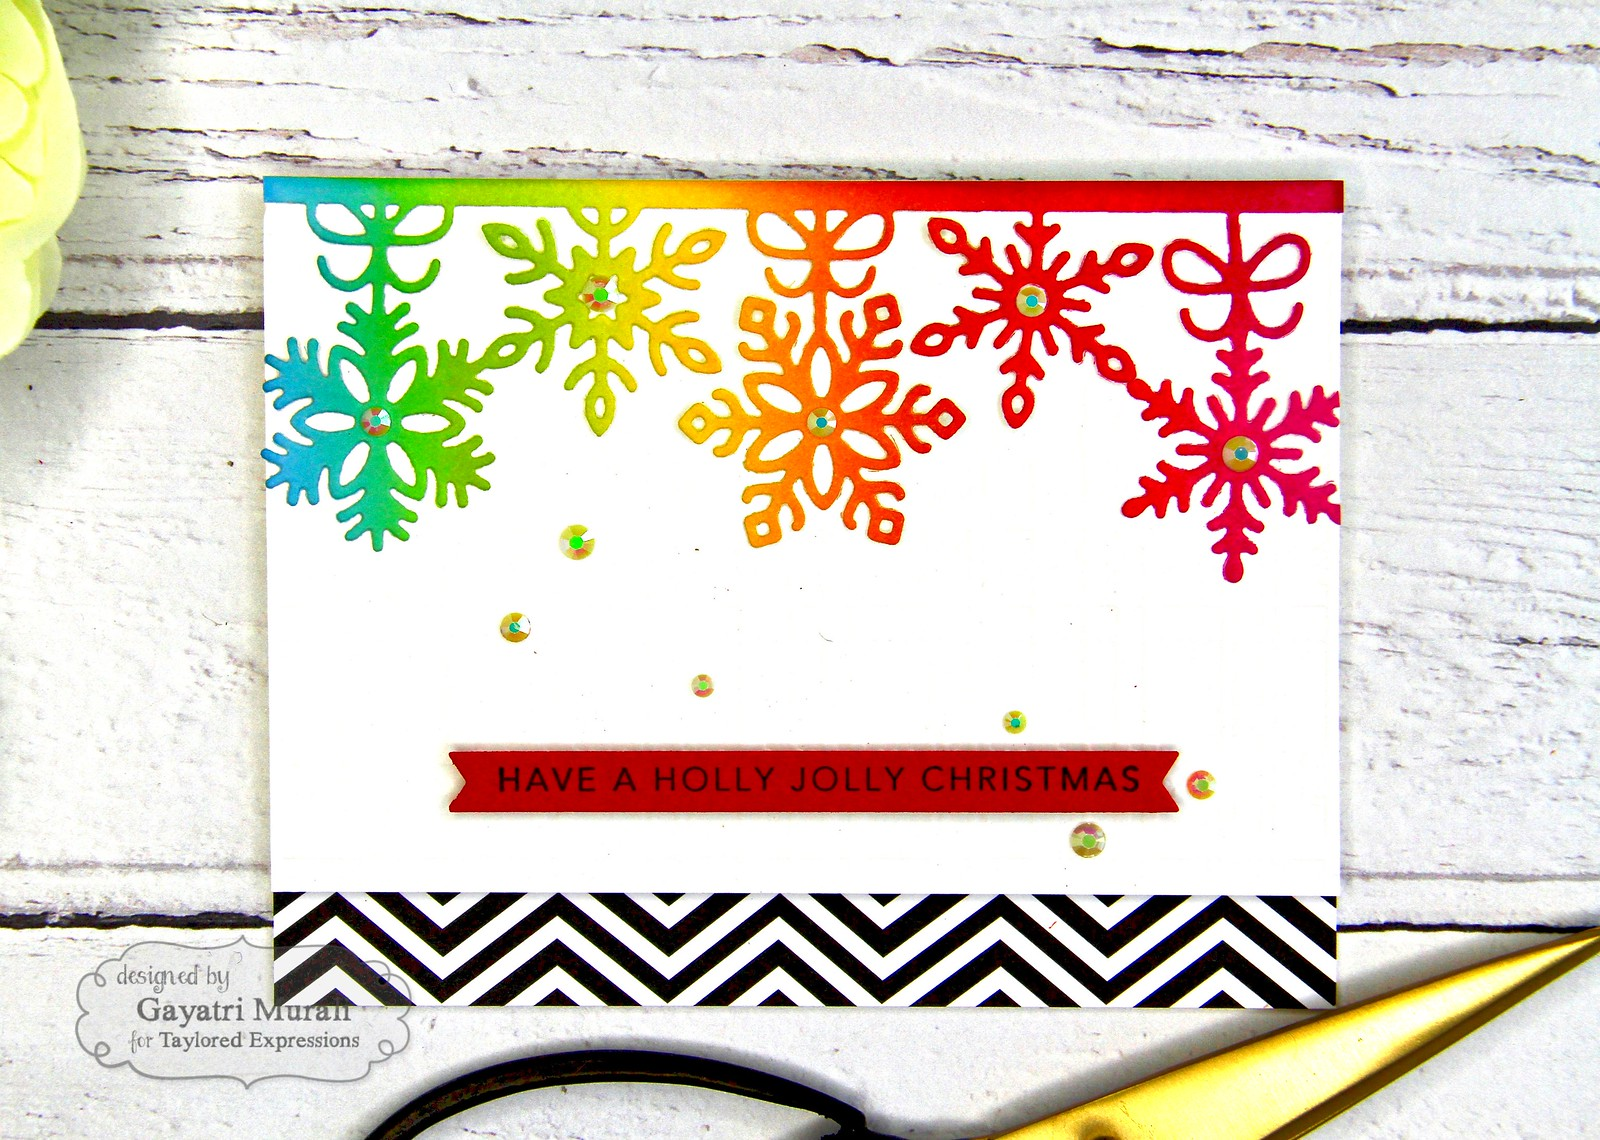 Rainbow Christmas card #1